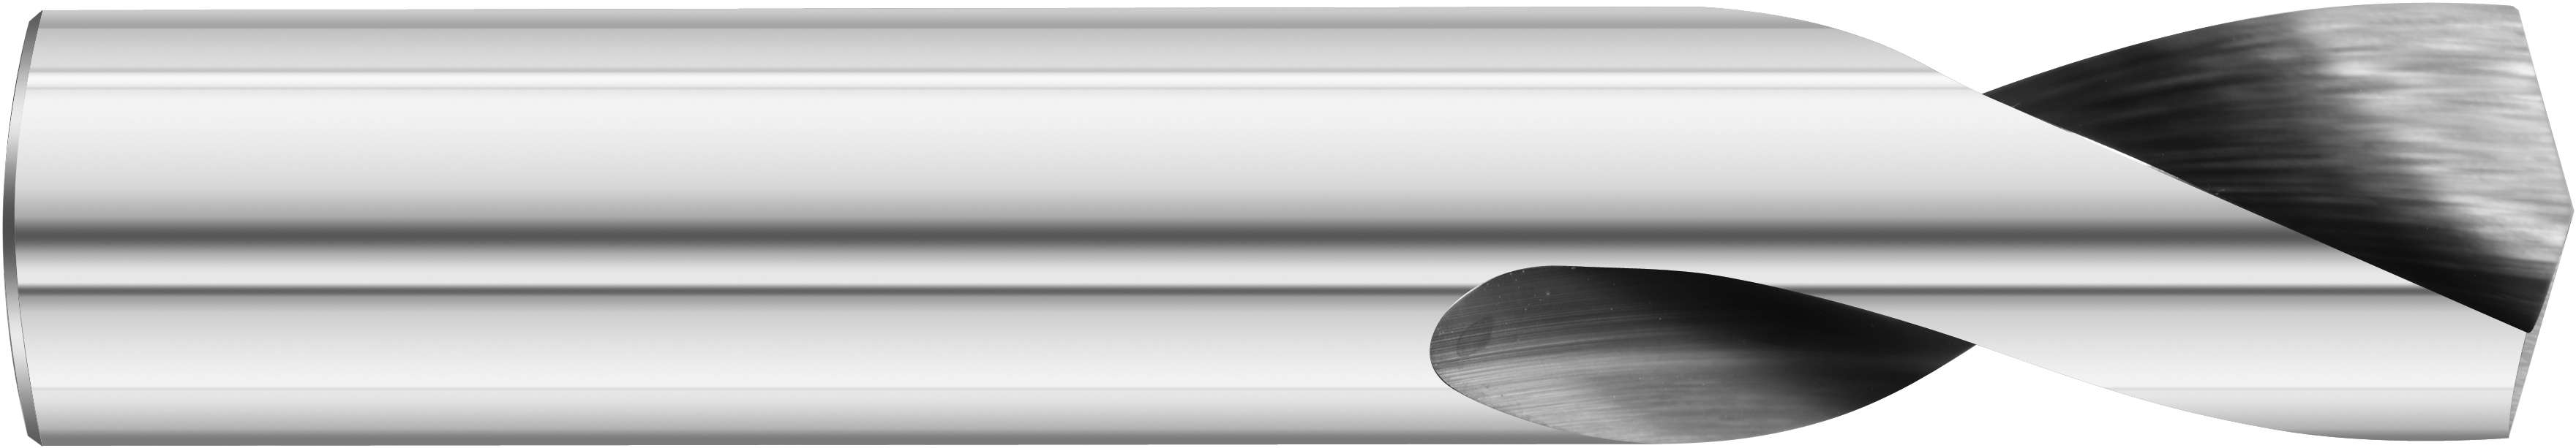 3/8 Solid Carbide Nc Spotting Dril 3xd Length Cam Relieved Se – 15782